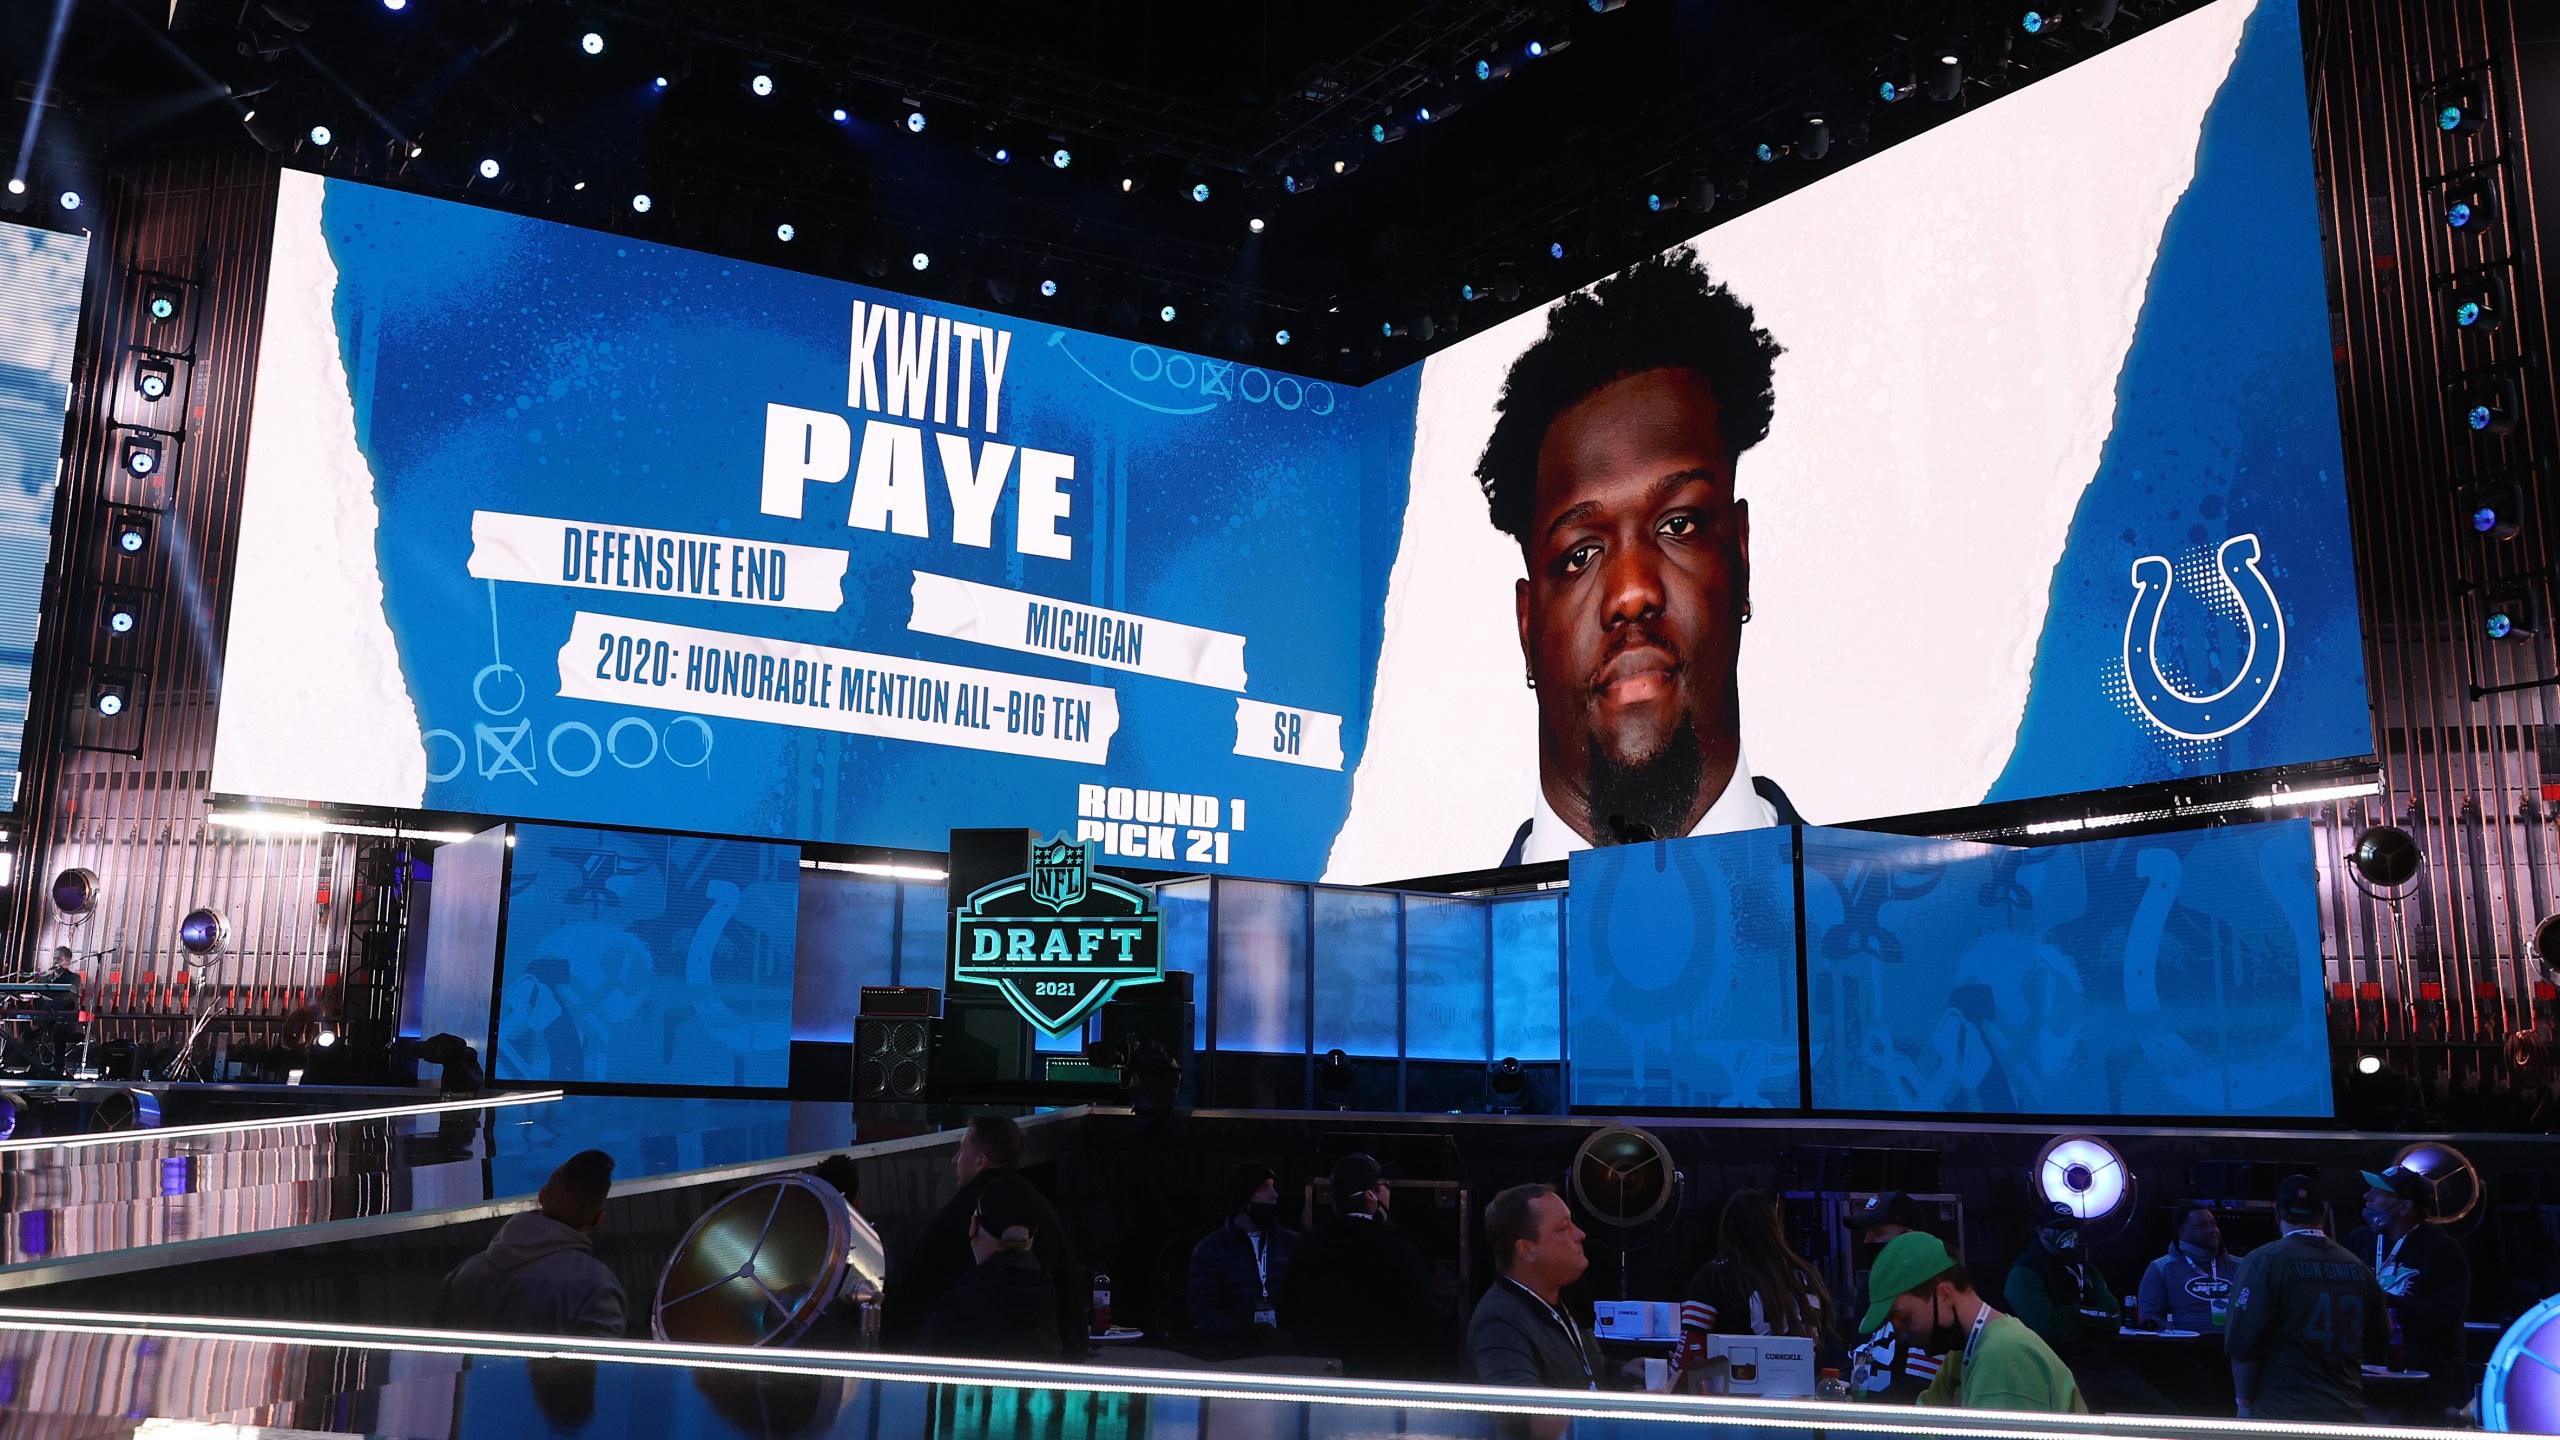 Colts First Round Draft Pick: Kwity Paye from Michigan